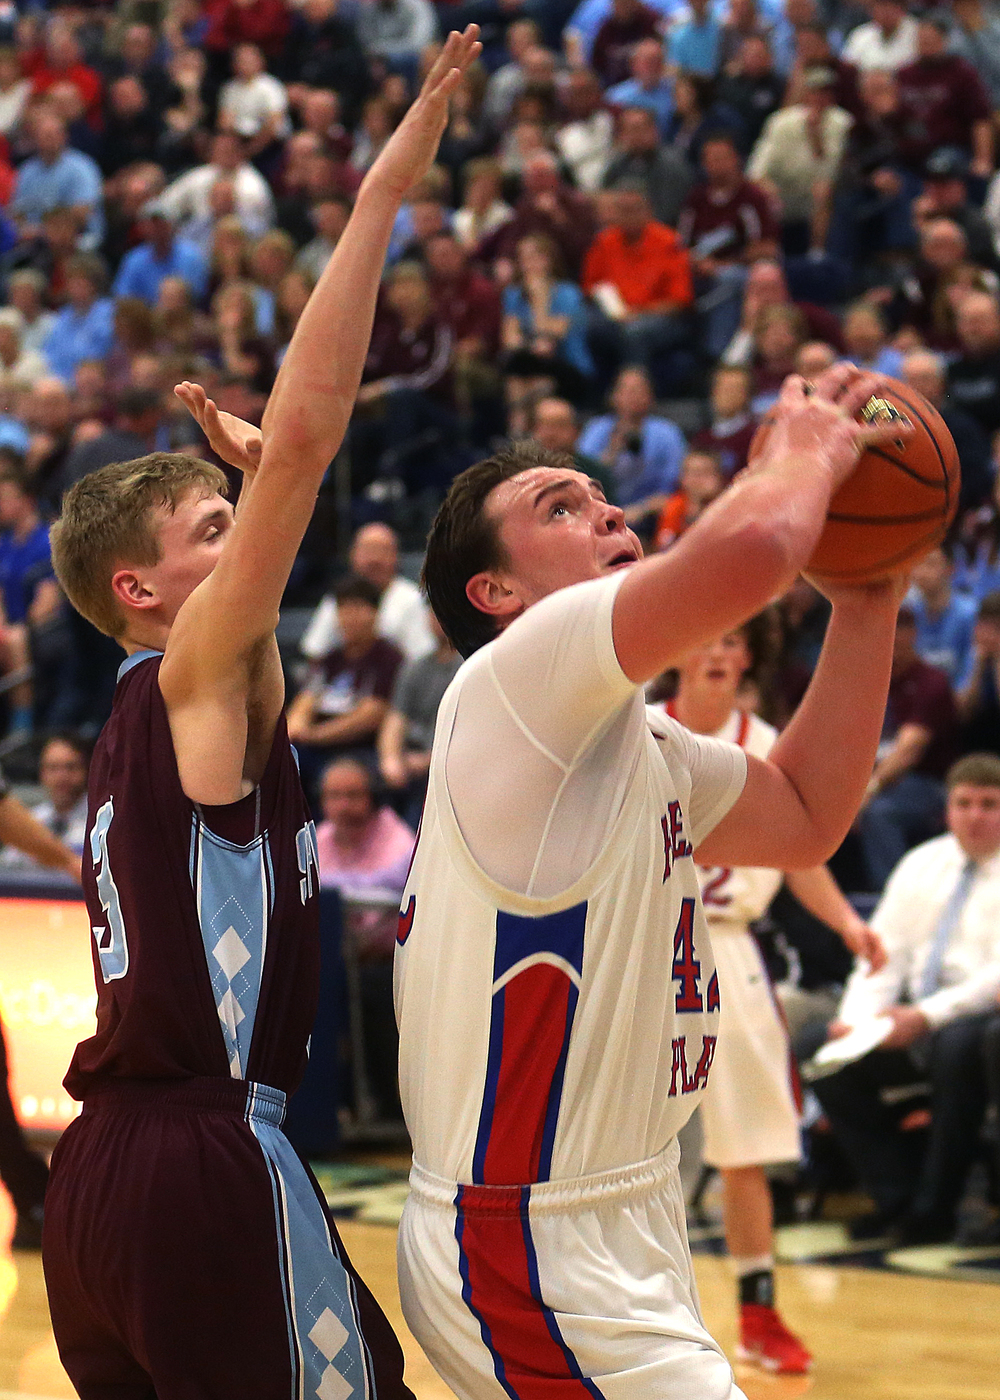 Pleasant Plains player Nik Clemens puts up a first half shot while being defended by St. Joseph-Ogden player Brandon Trimble. David Spencer/The State Journal Register